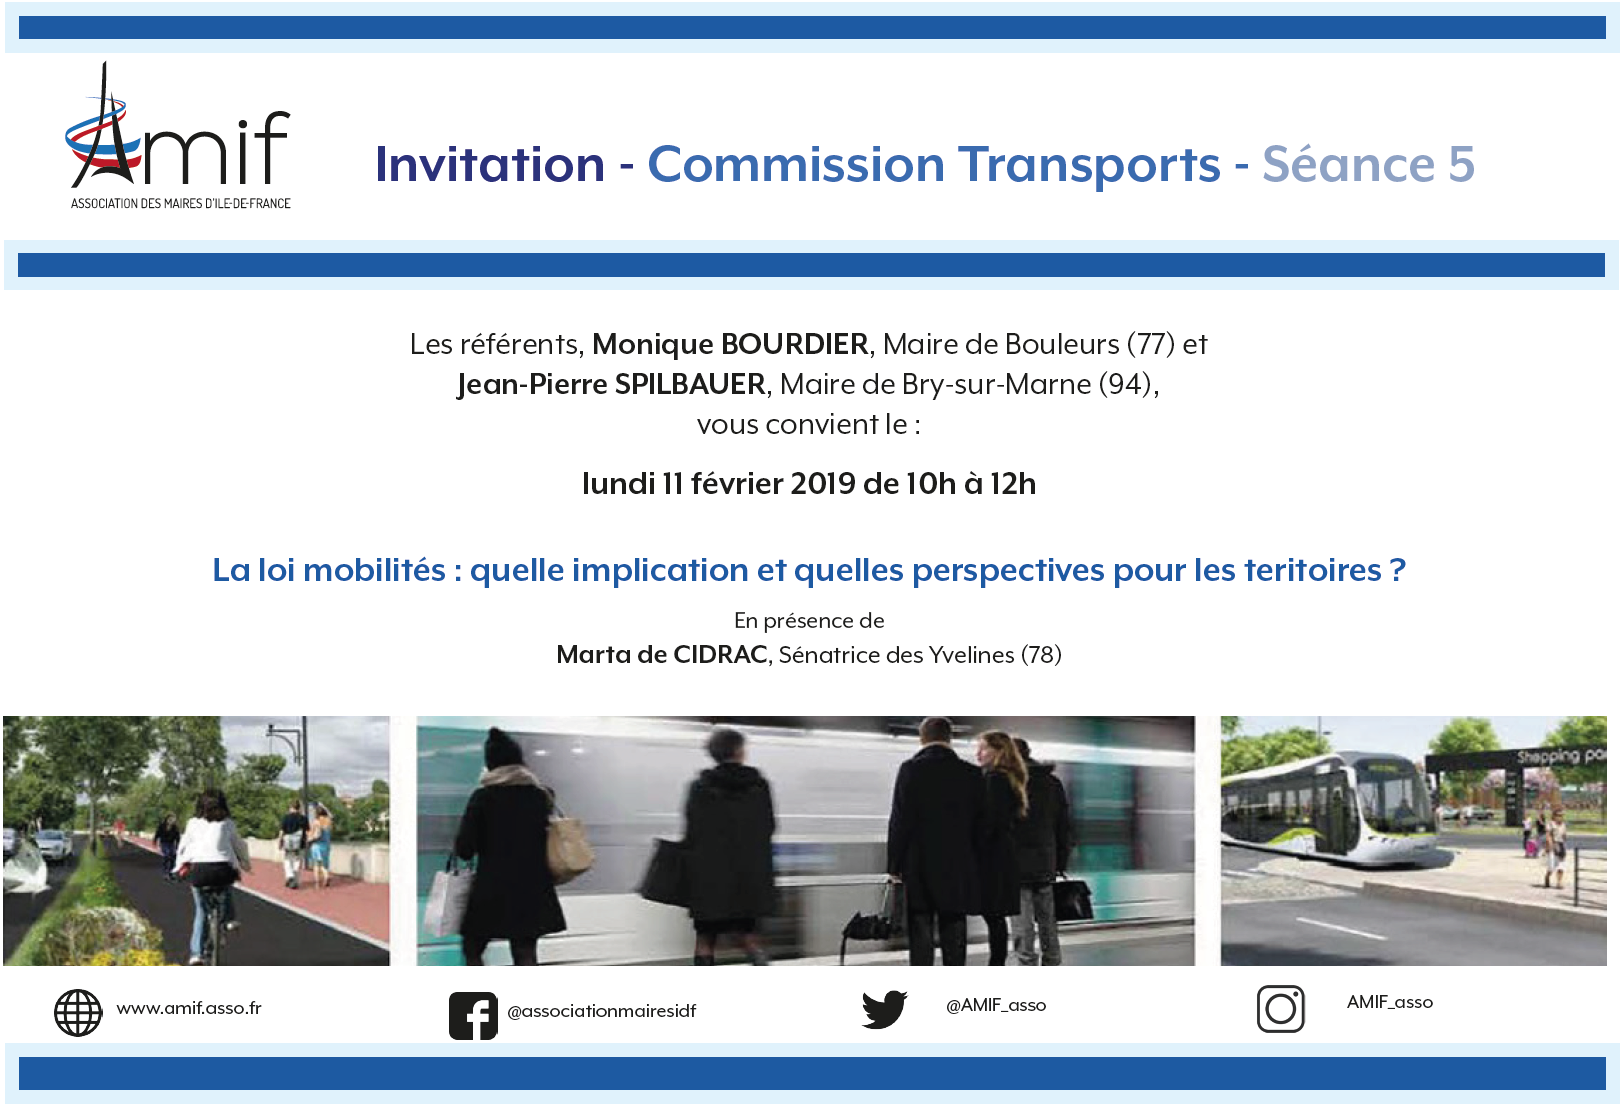 CommissionTransportsSeance511fevrier2019v3